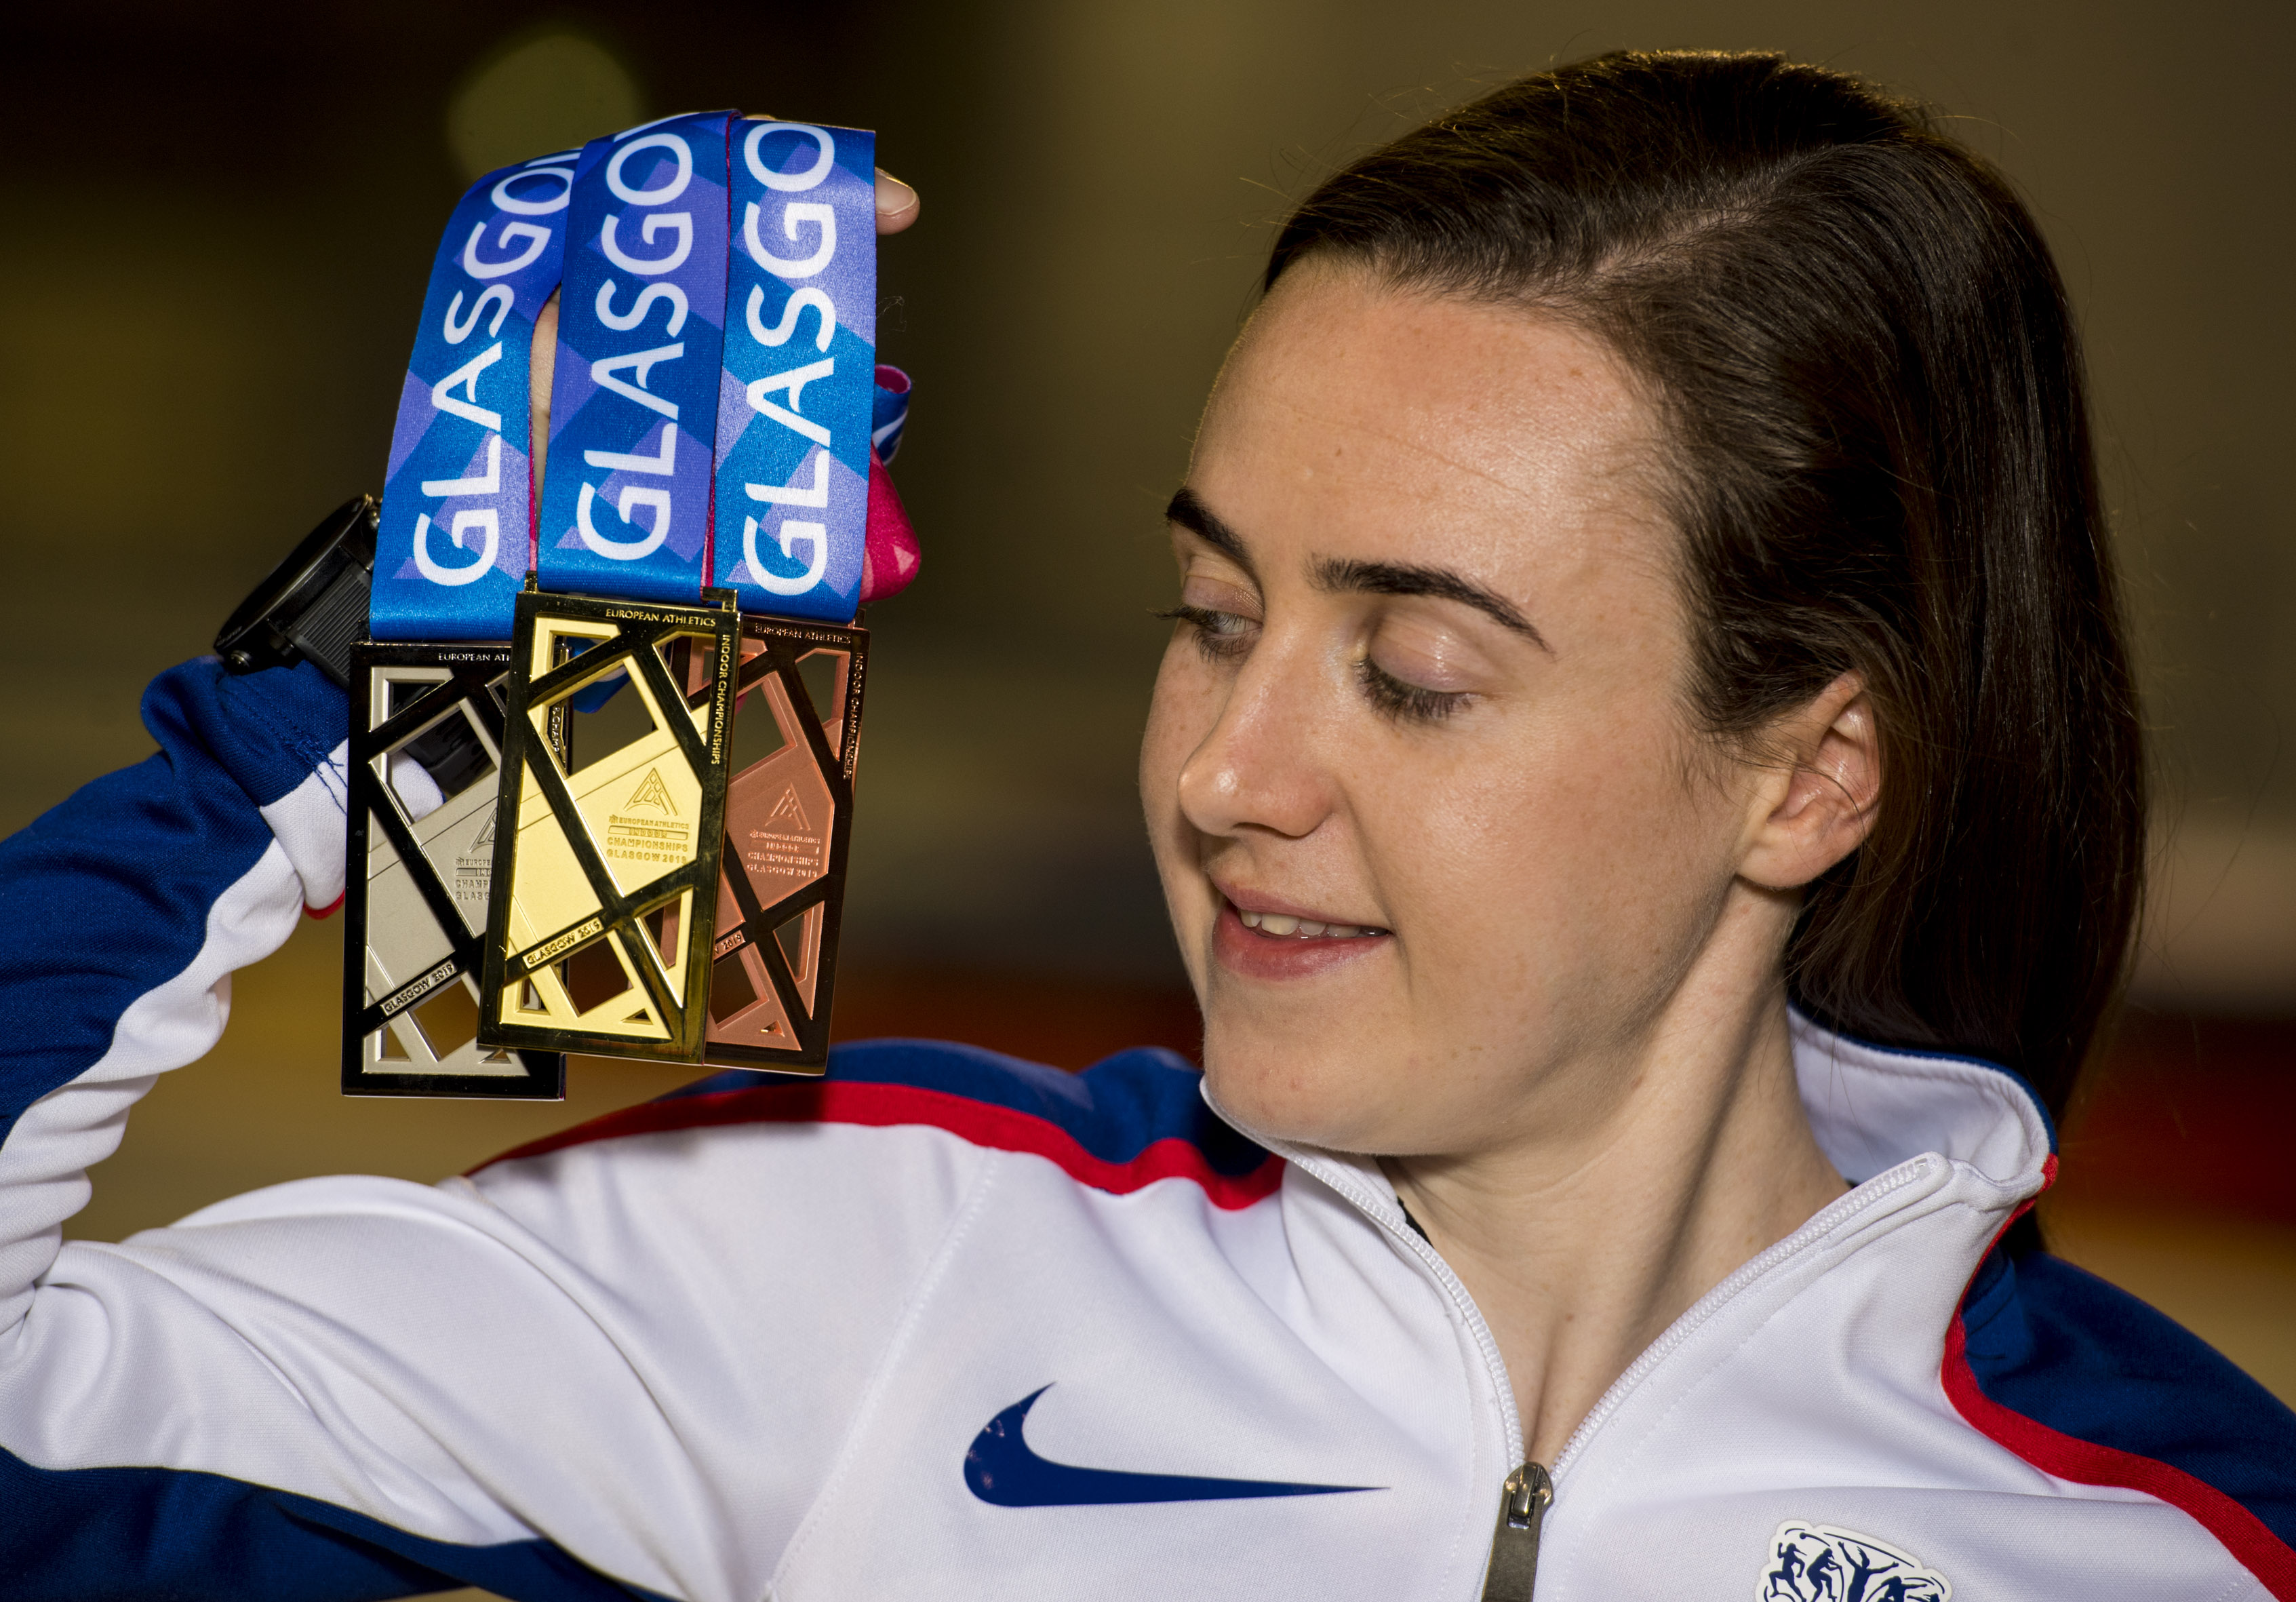 The Glasgow School of Art is going for gold as official medals revealed ahead of Glasgow 2019